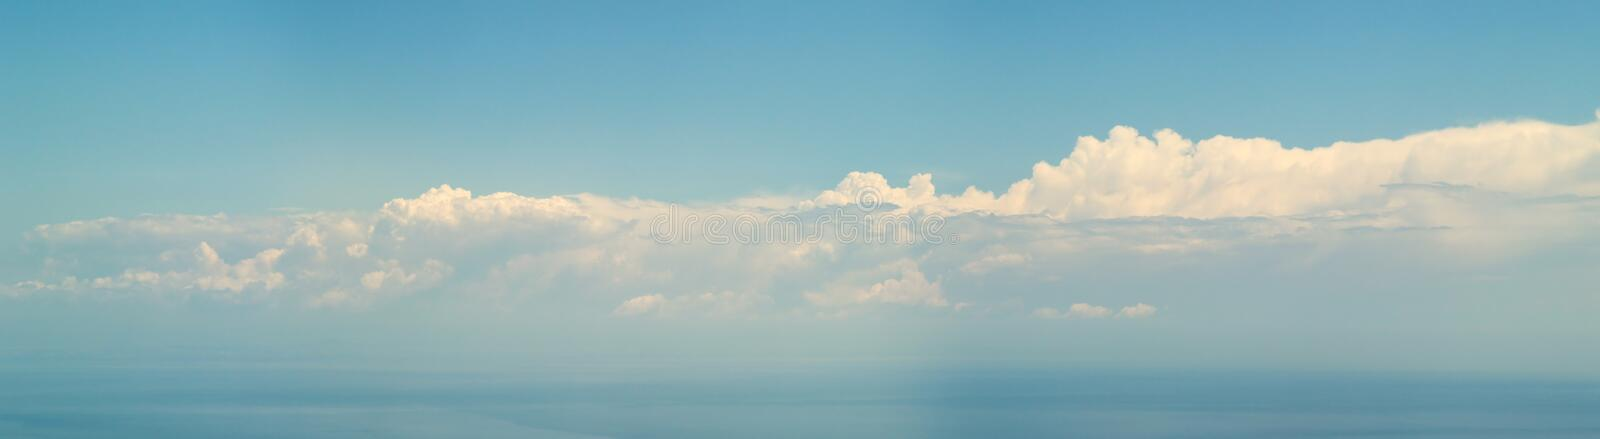 7500px clouds over sea - Panorama royalty free stock image